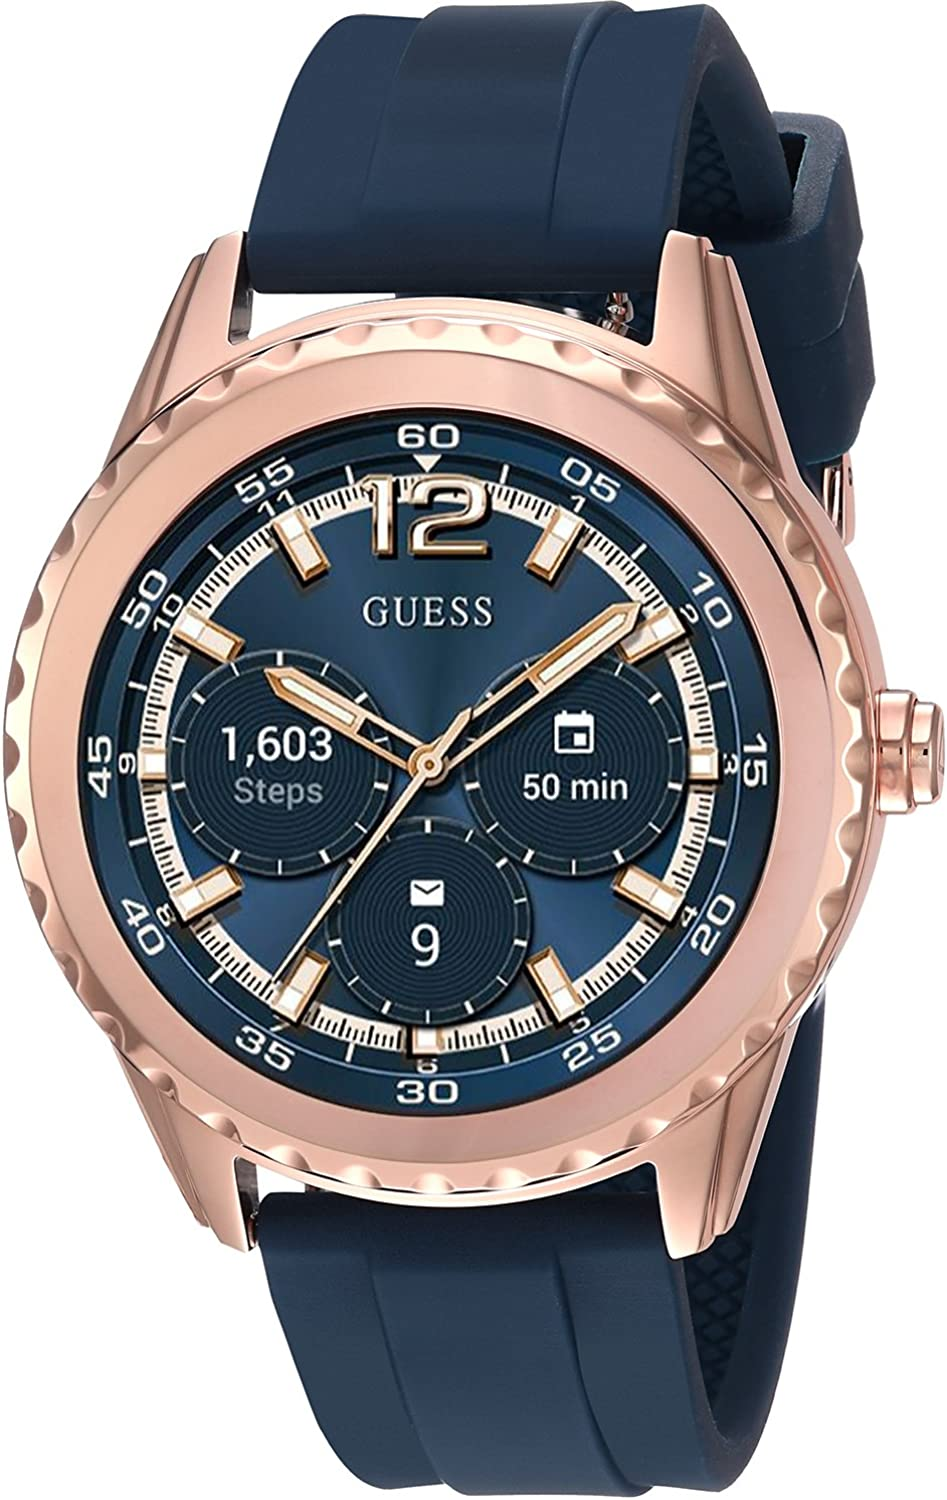 GUESS Womens Stainless Steel Android Wear Touch Screen Silicone ...